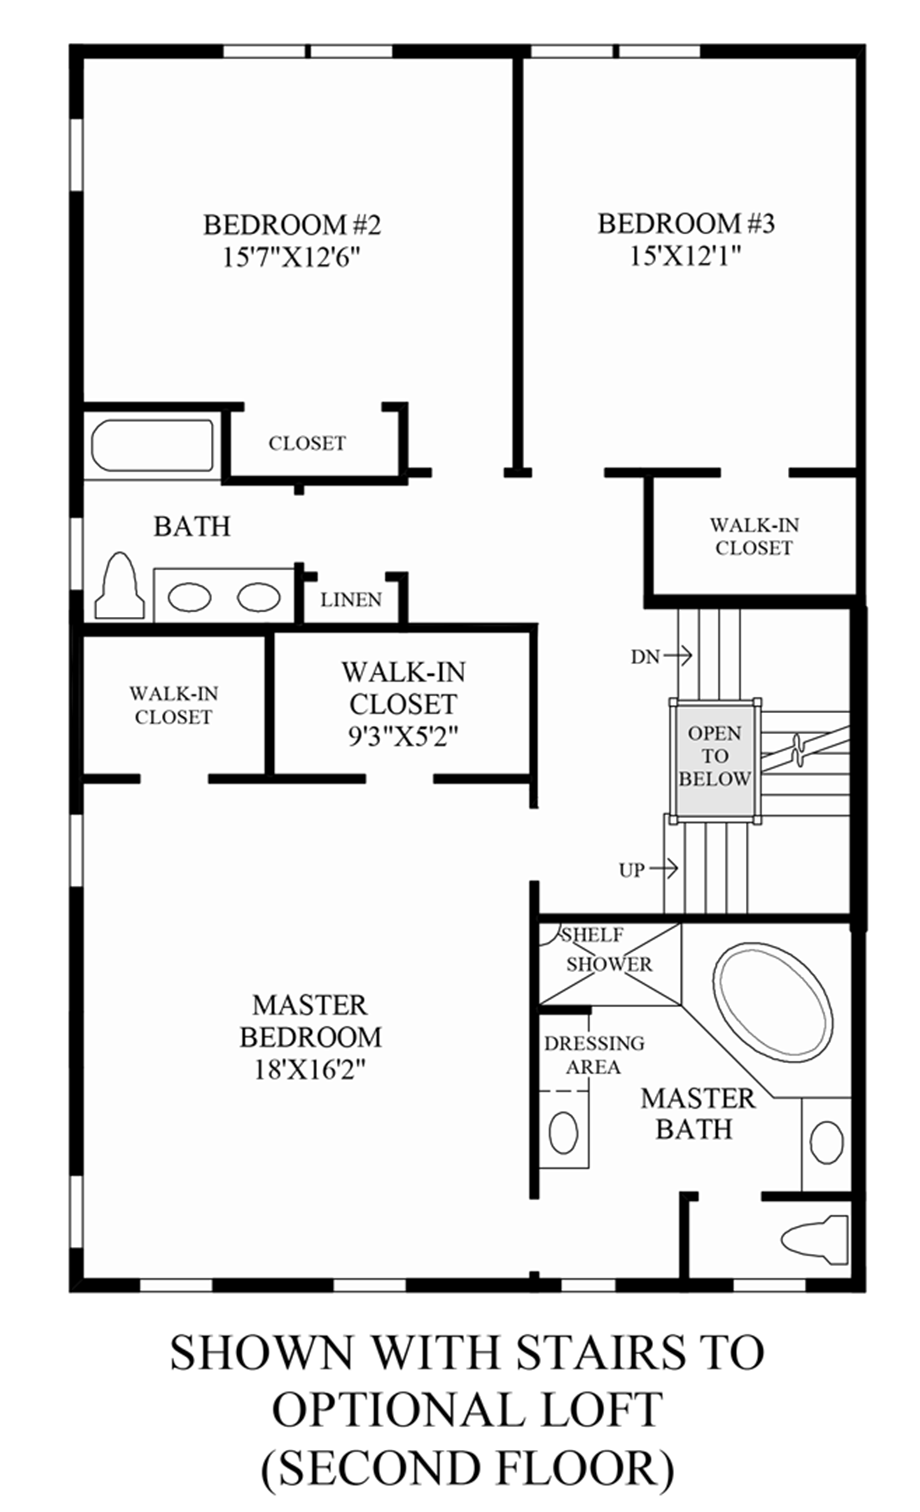 Stairs to Optional Loft (2nd Floor) Floor Plan